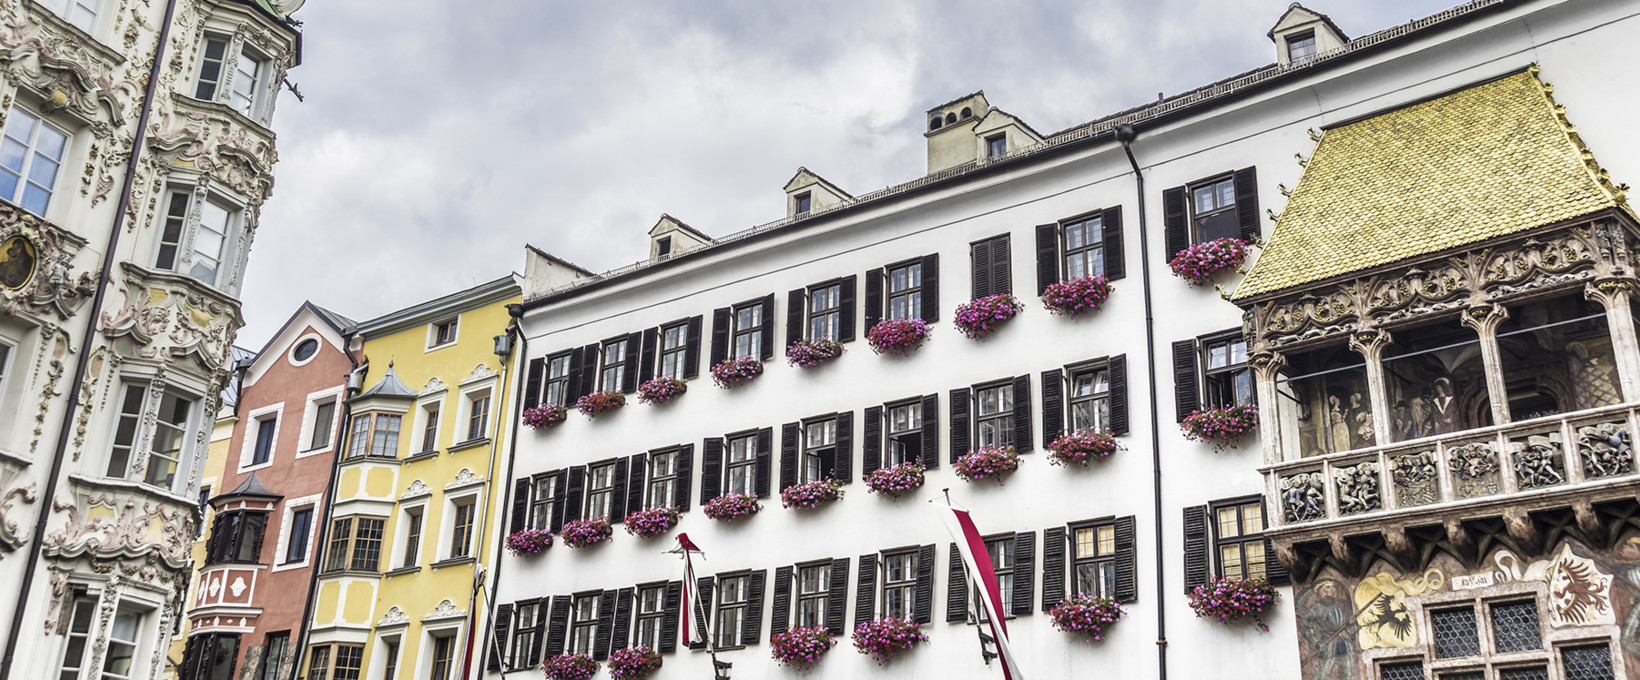 Golden roof in old town | Innsbruck